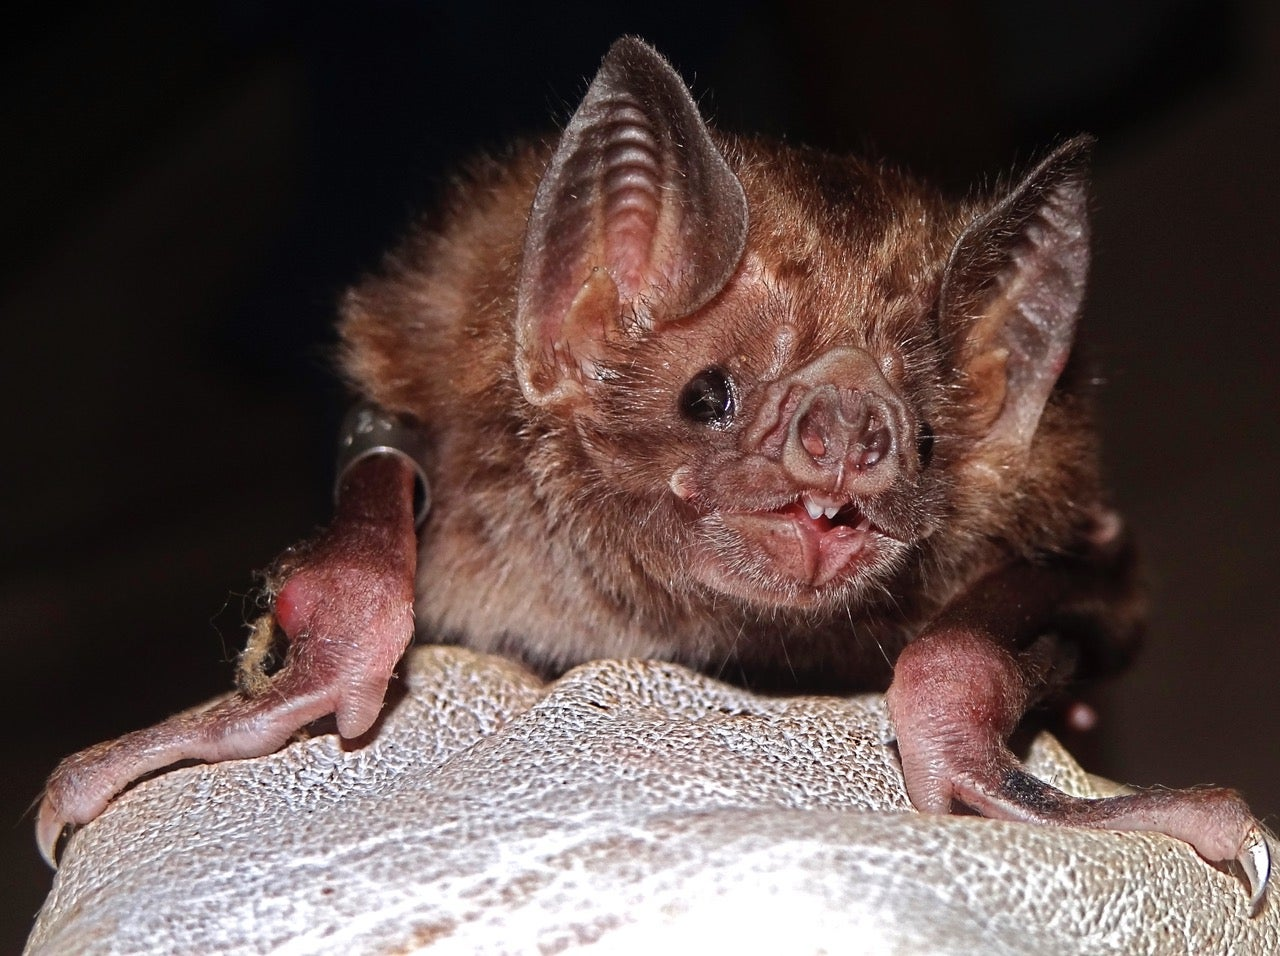 Vampire bats could soon swarm to the United States